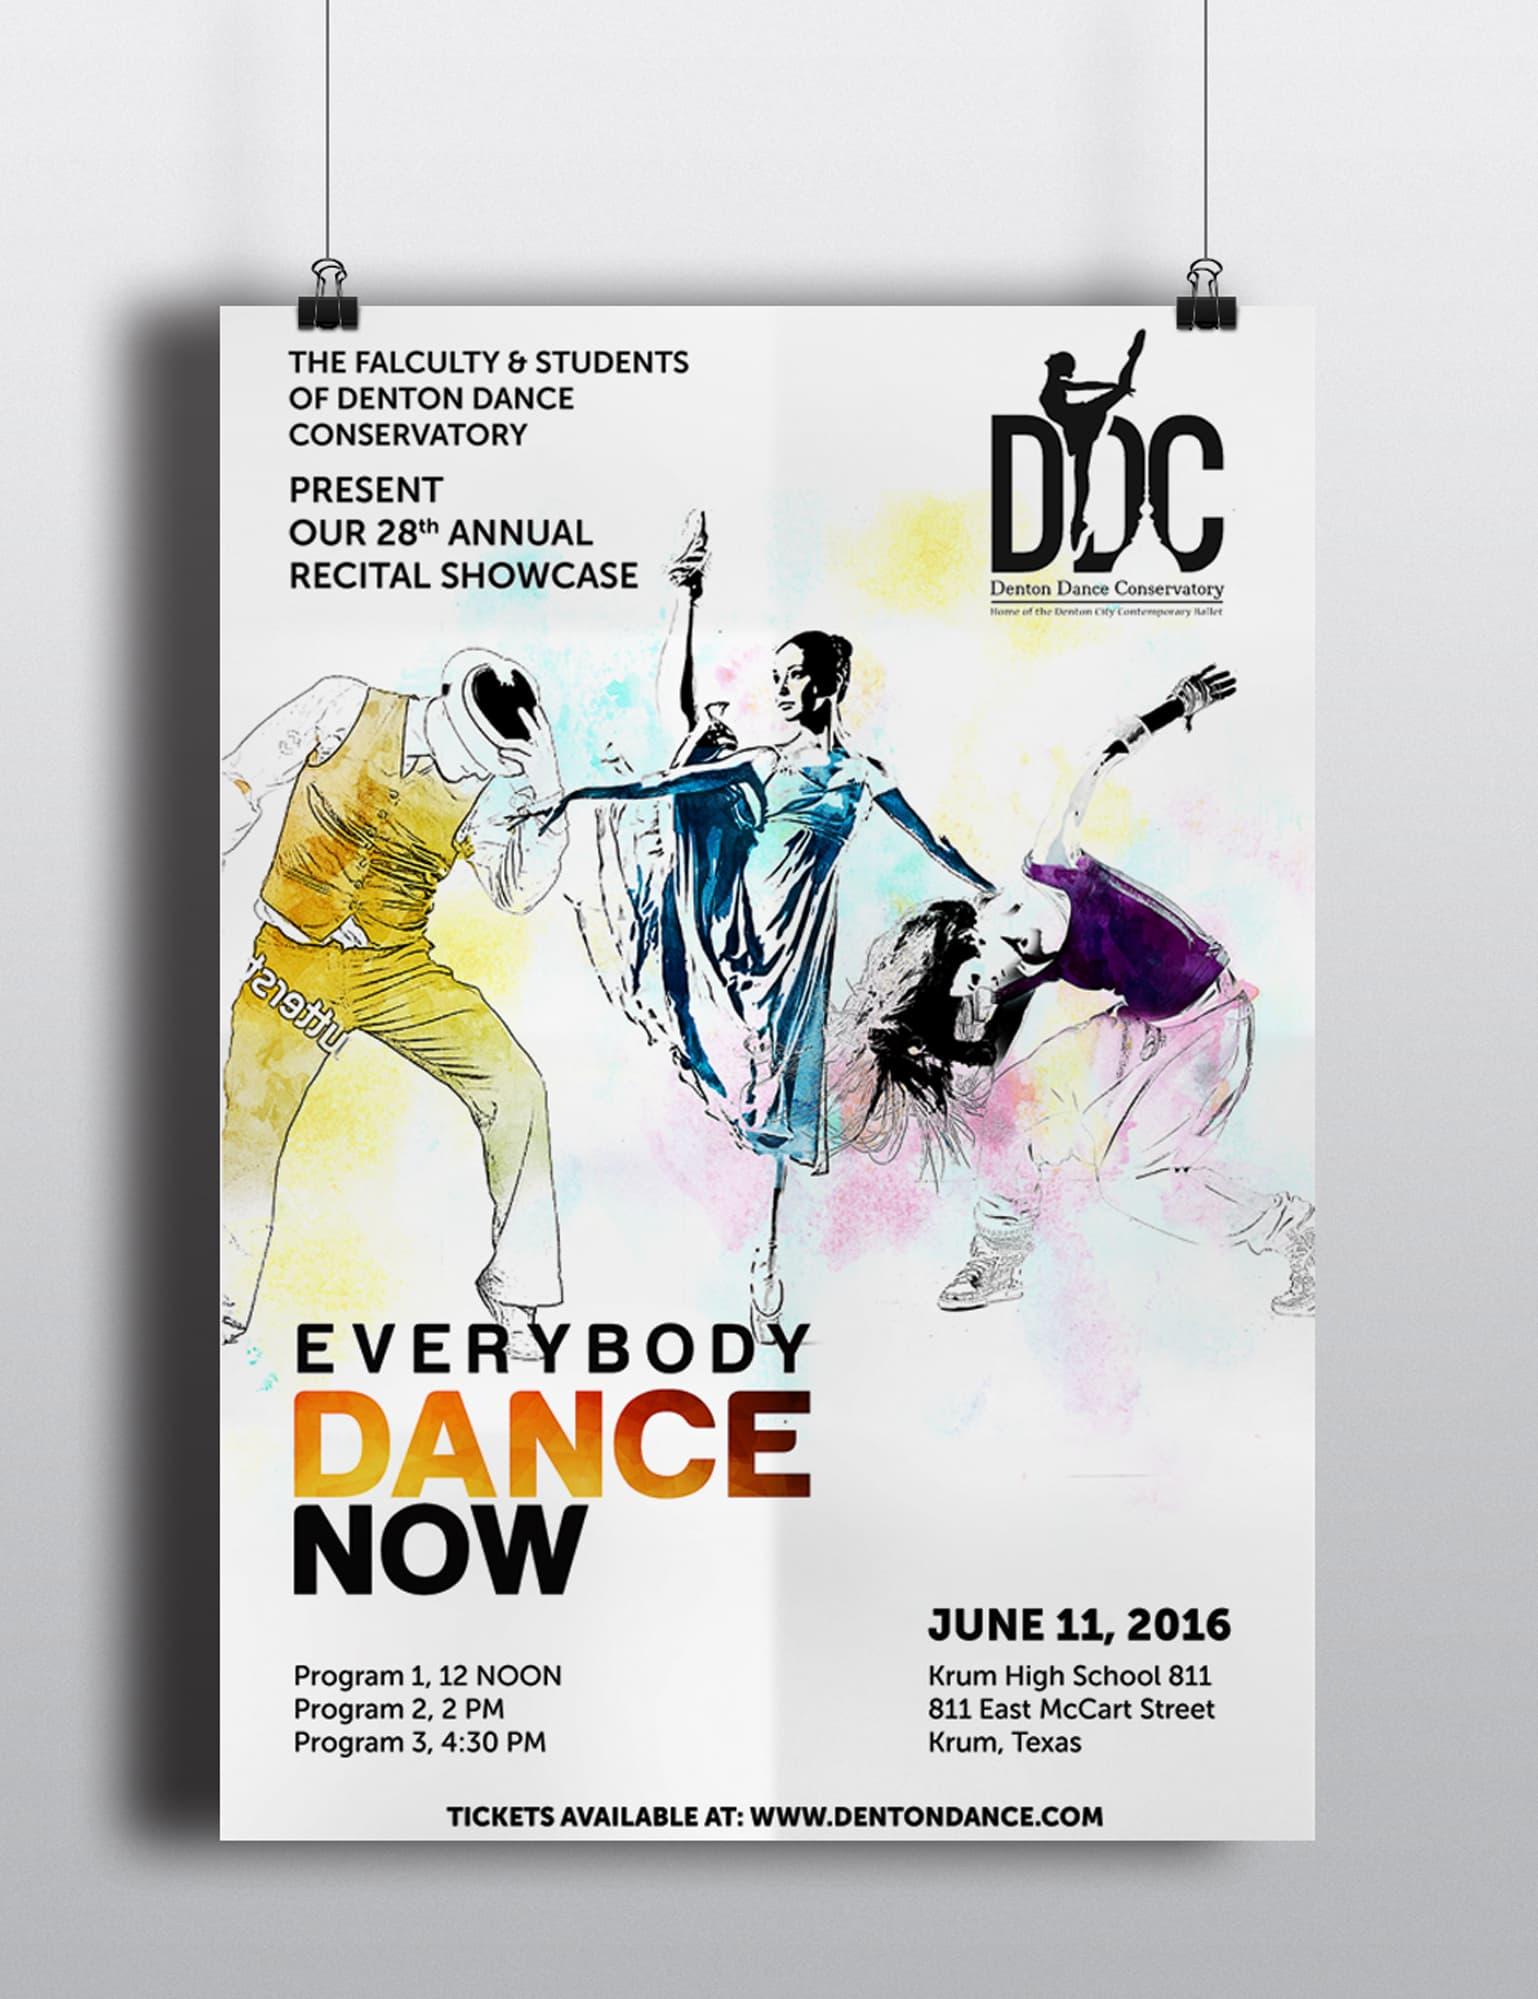 Design Creative Dance Music Poster For Your Event By Zahidryk,Geometric Line Design Worksheets